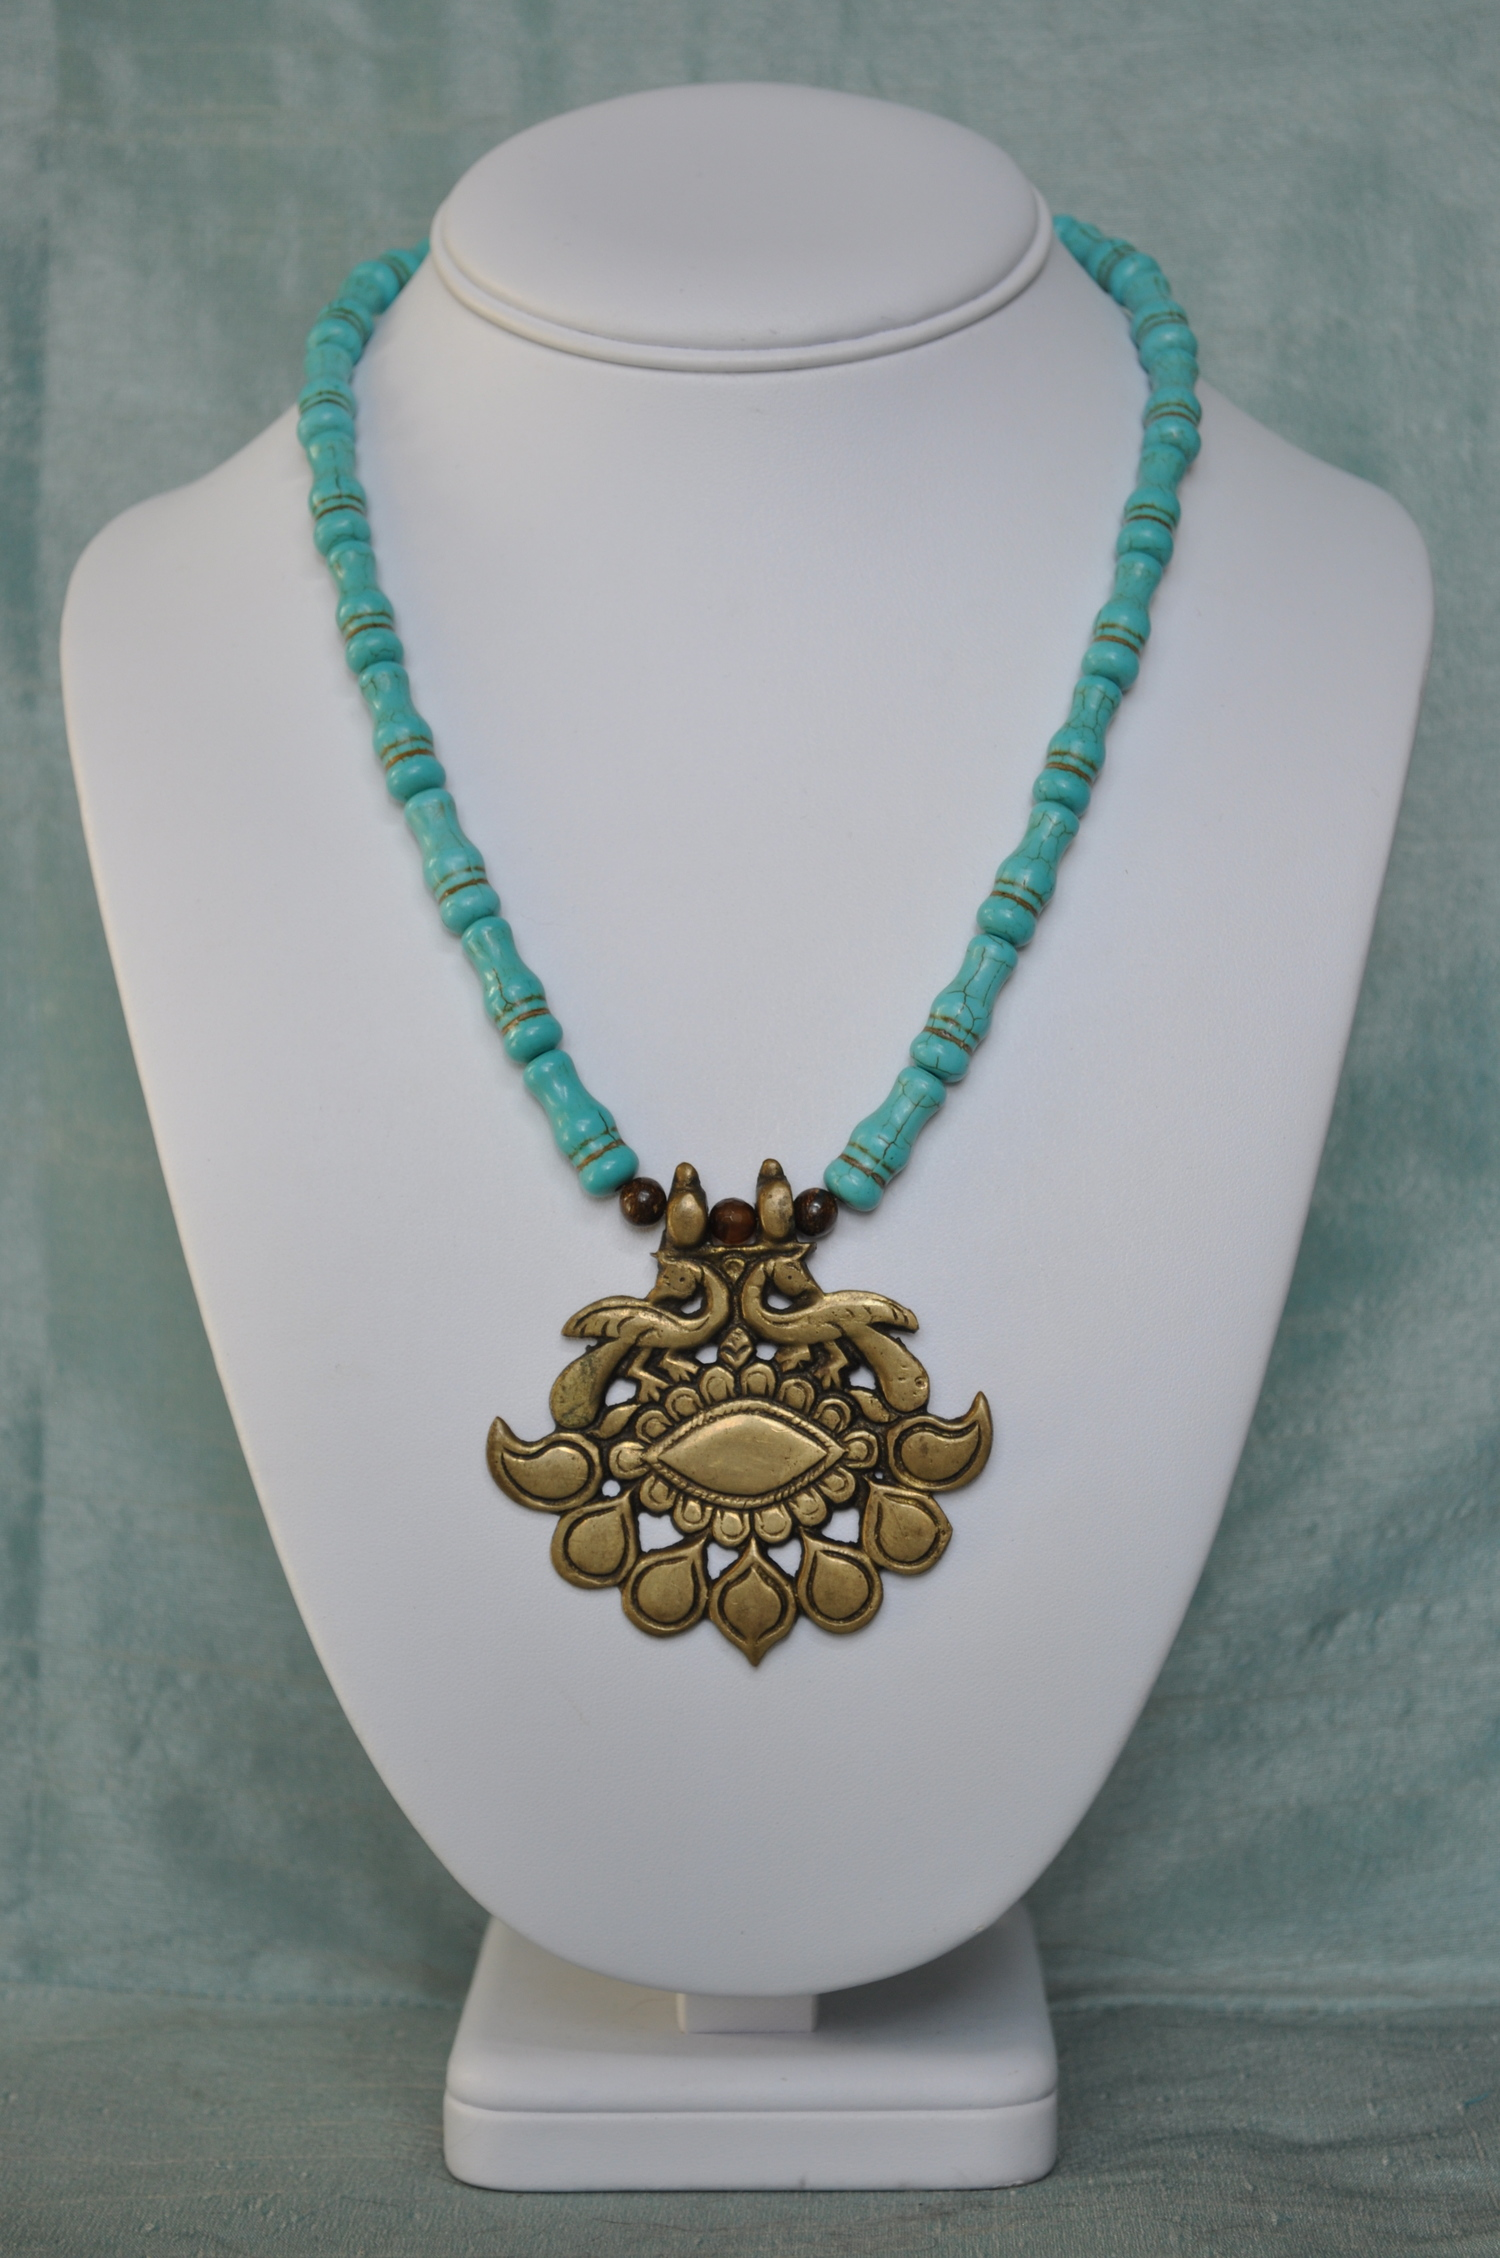 Antique Brass Drawer pull (turned pendant) with Turquoise stones ...